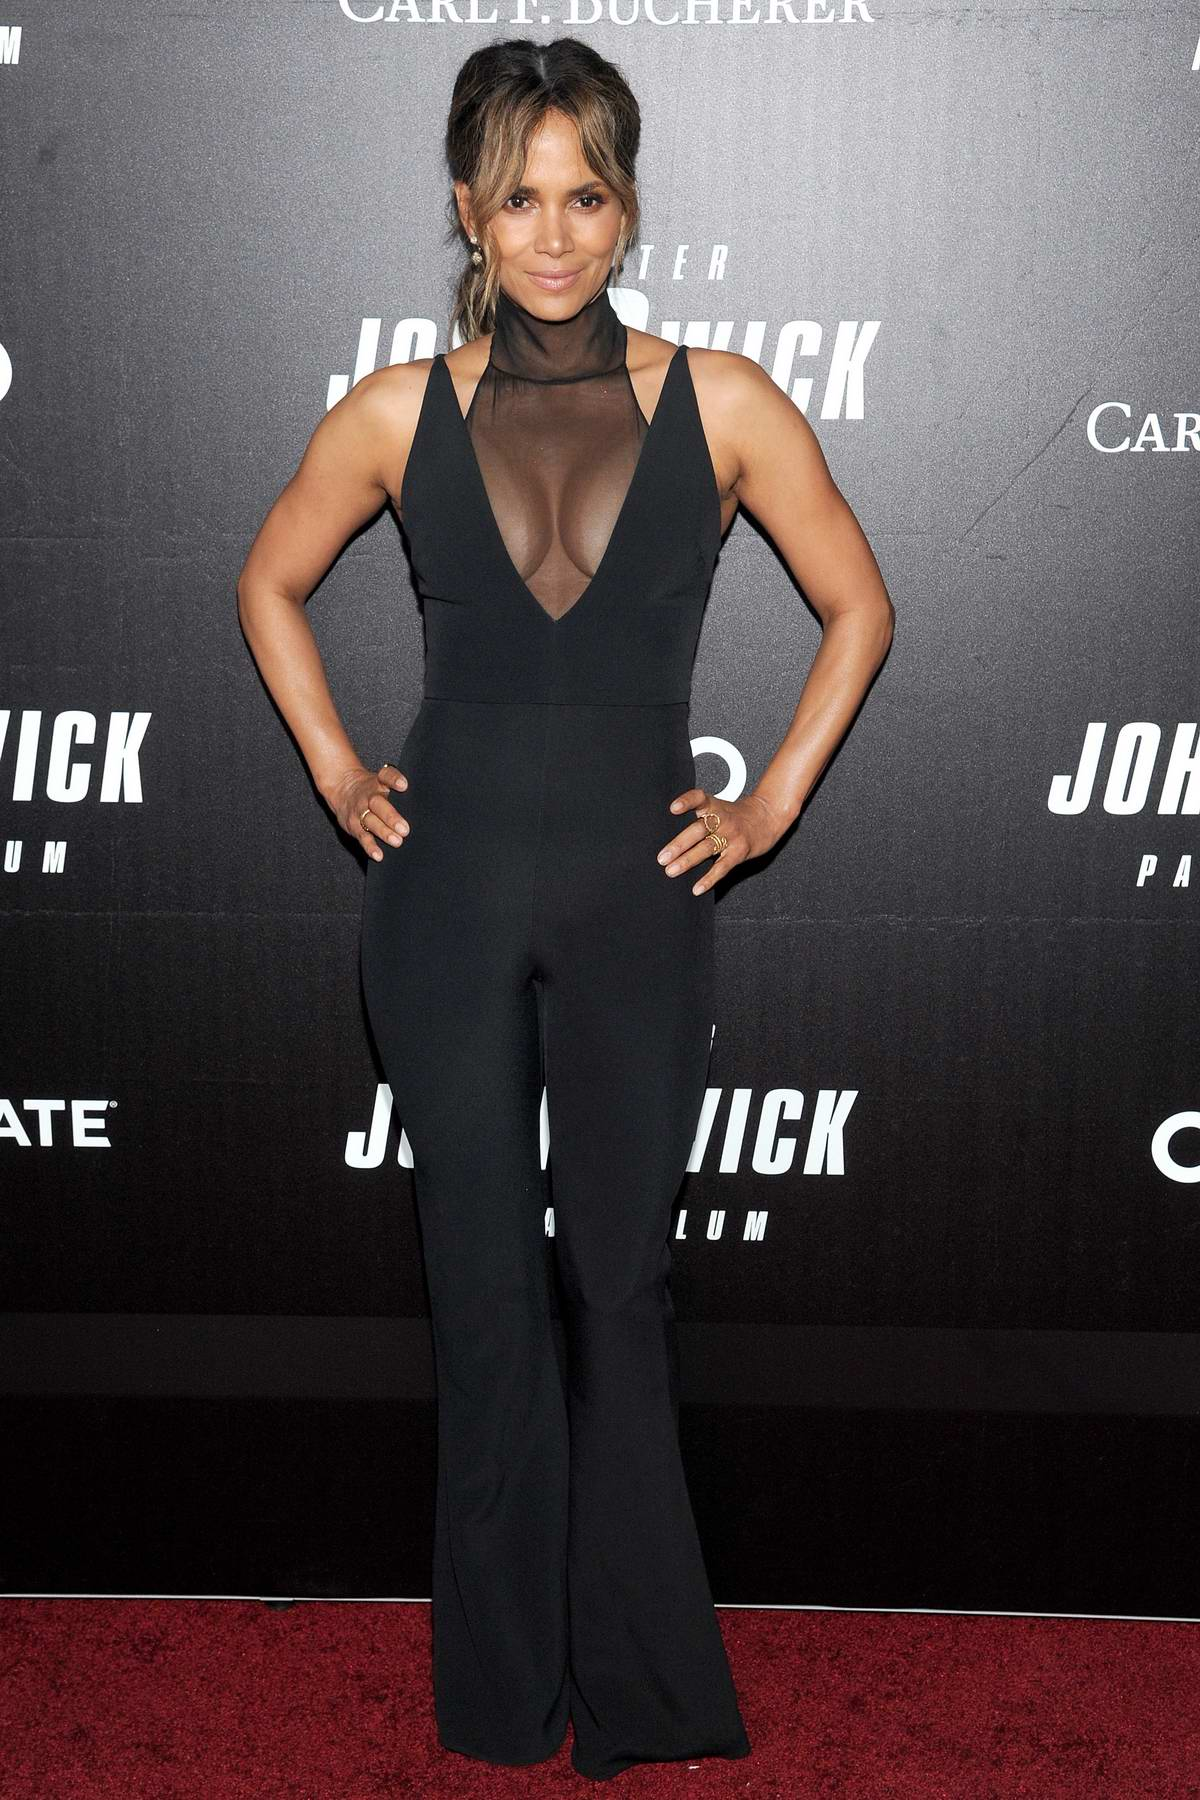 Halle Berry attends the 'John Wick: Chapter 3' World Premiere at One Hanson Place in New York City